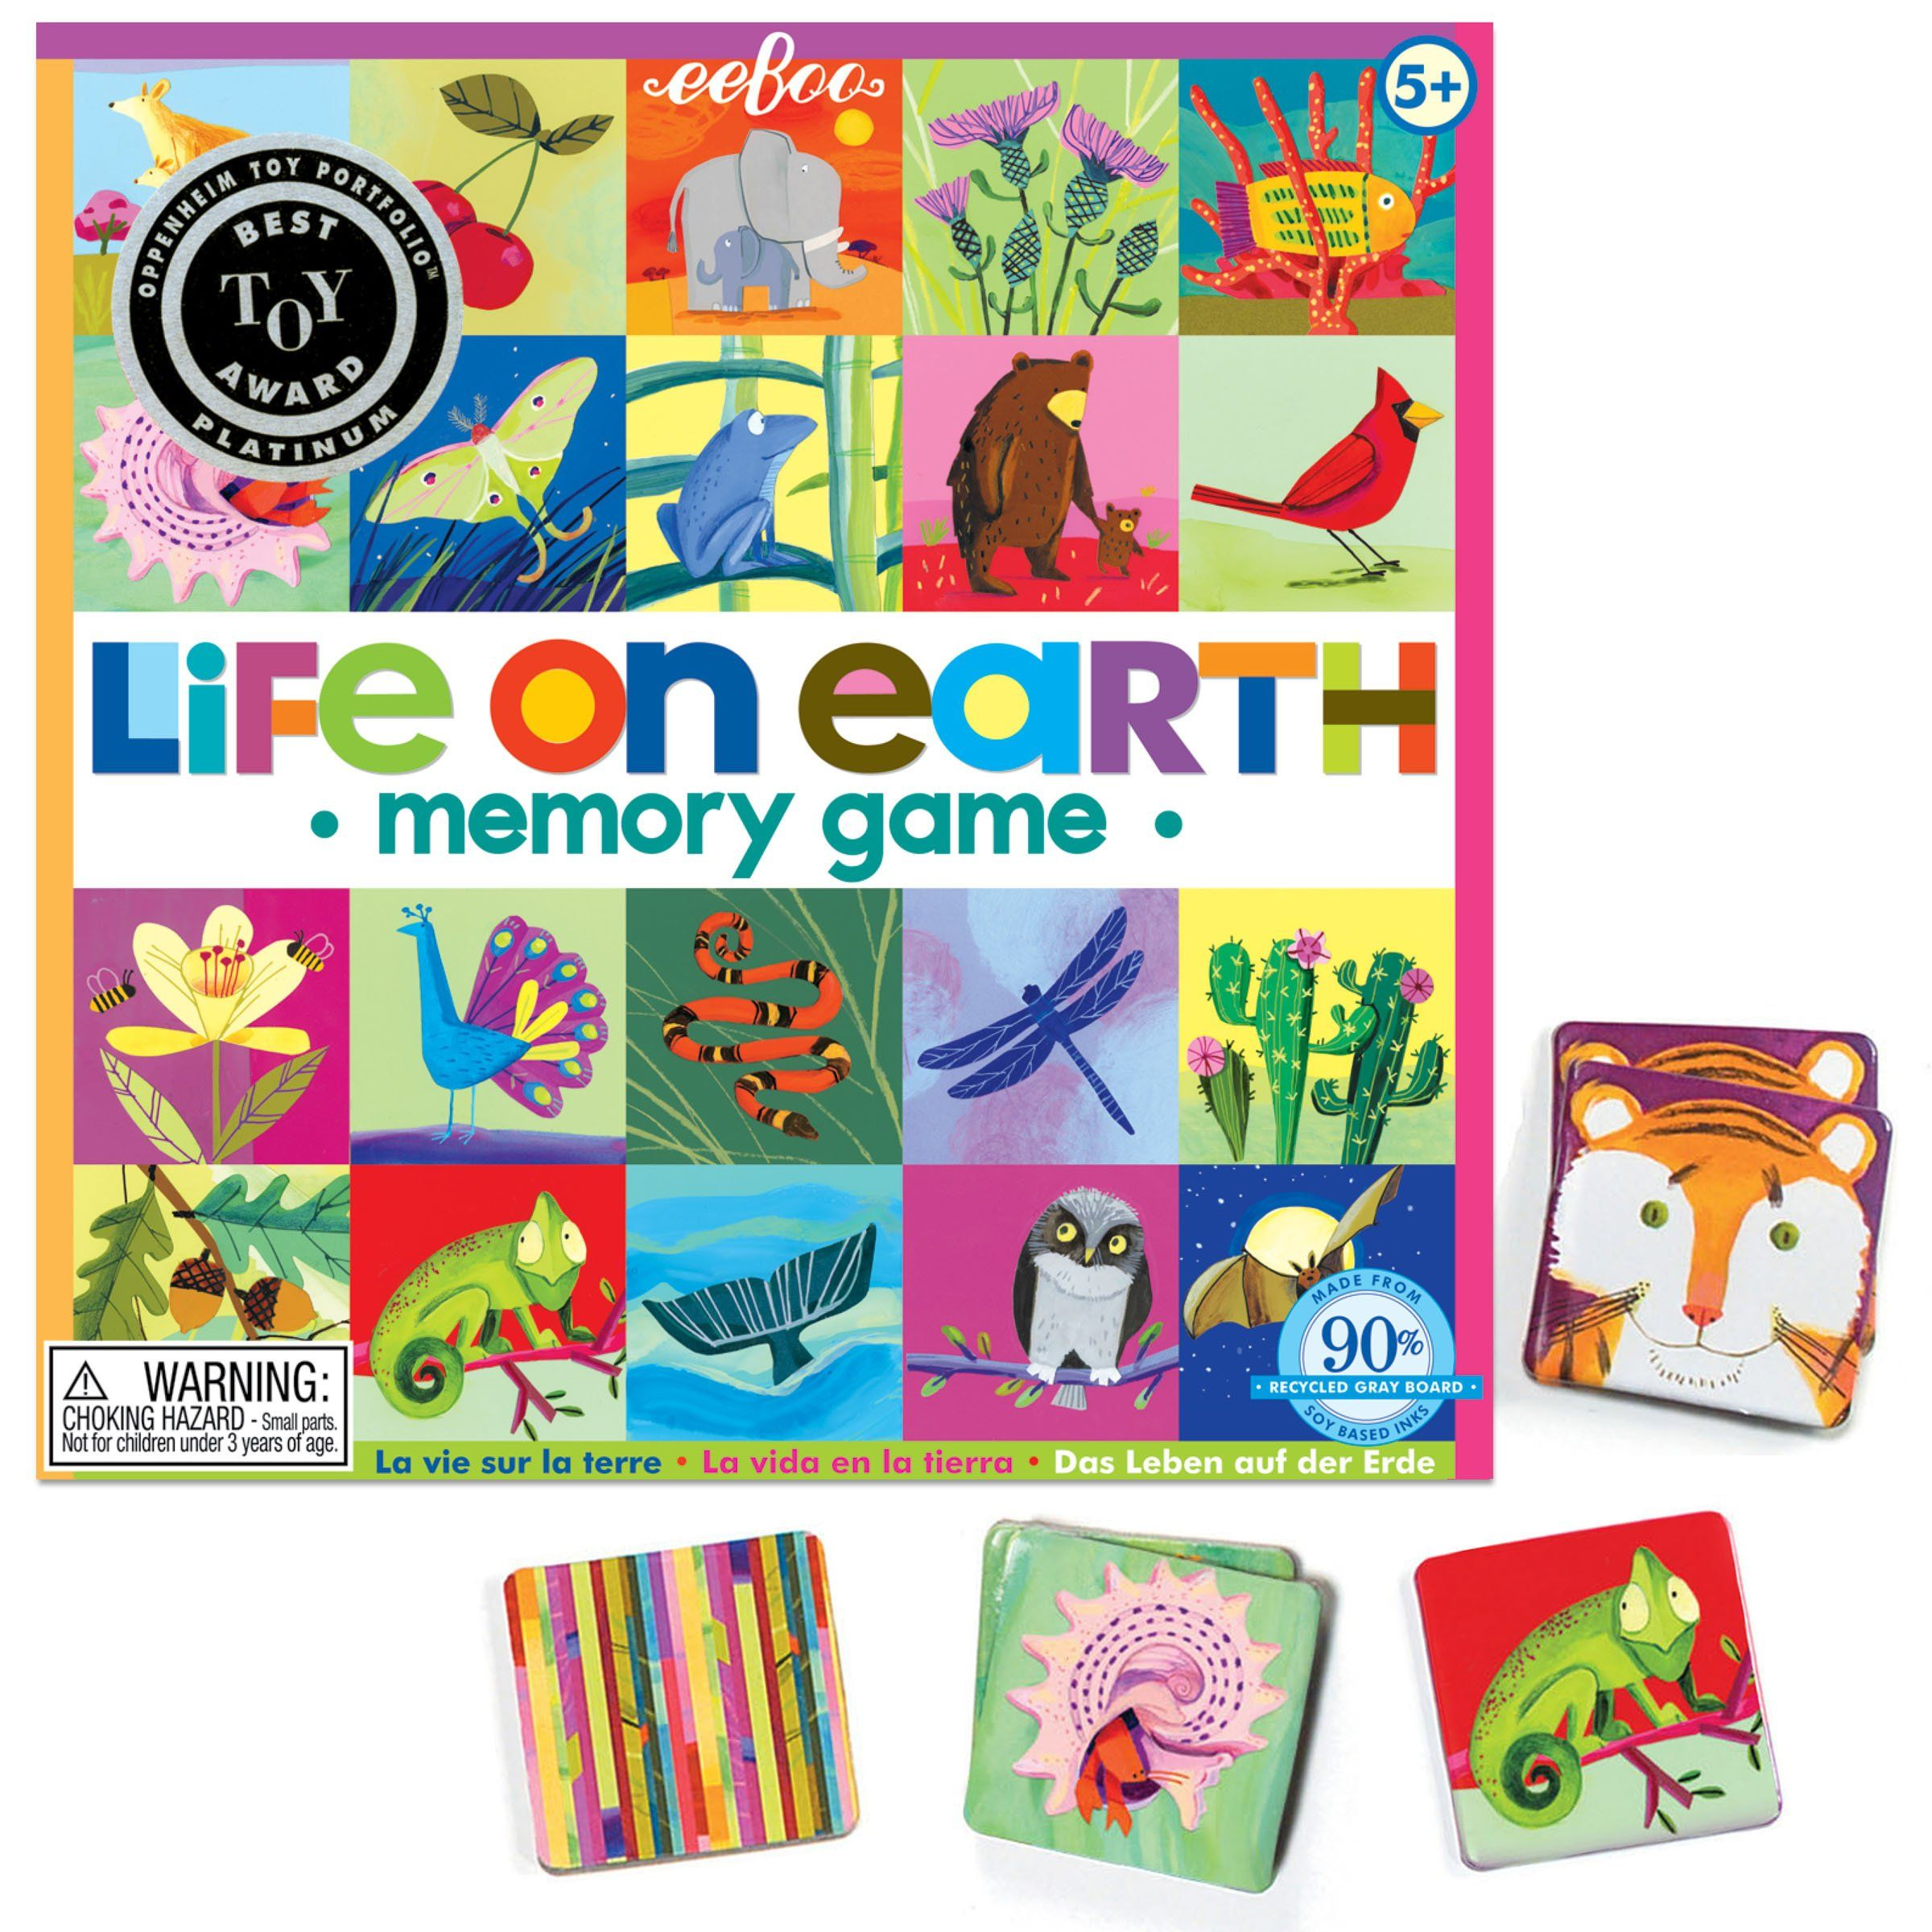 Amazon.com: Eeboo Life on Earth Matching Game: Toys & Games